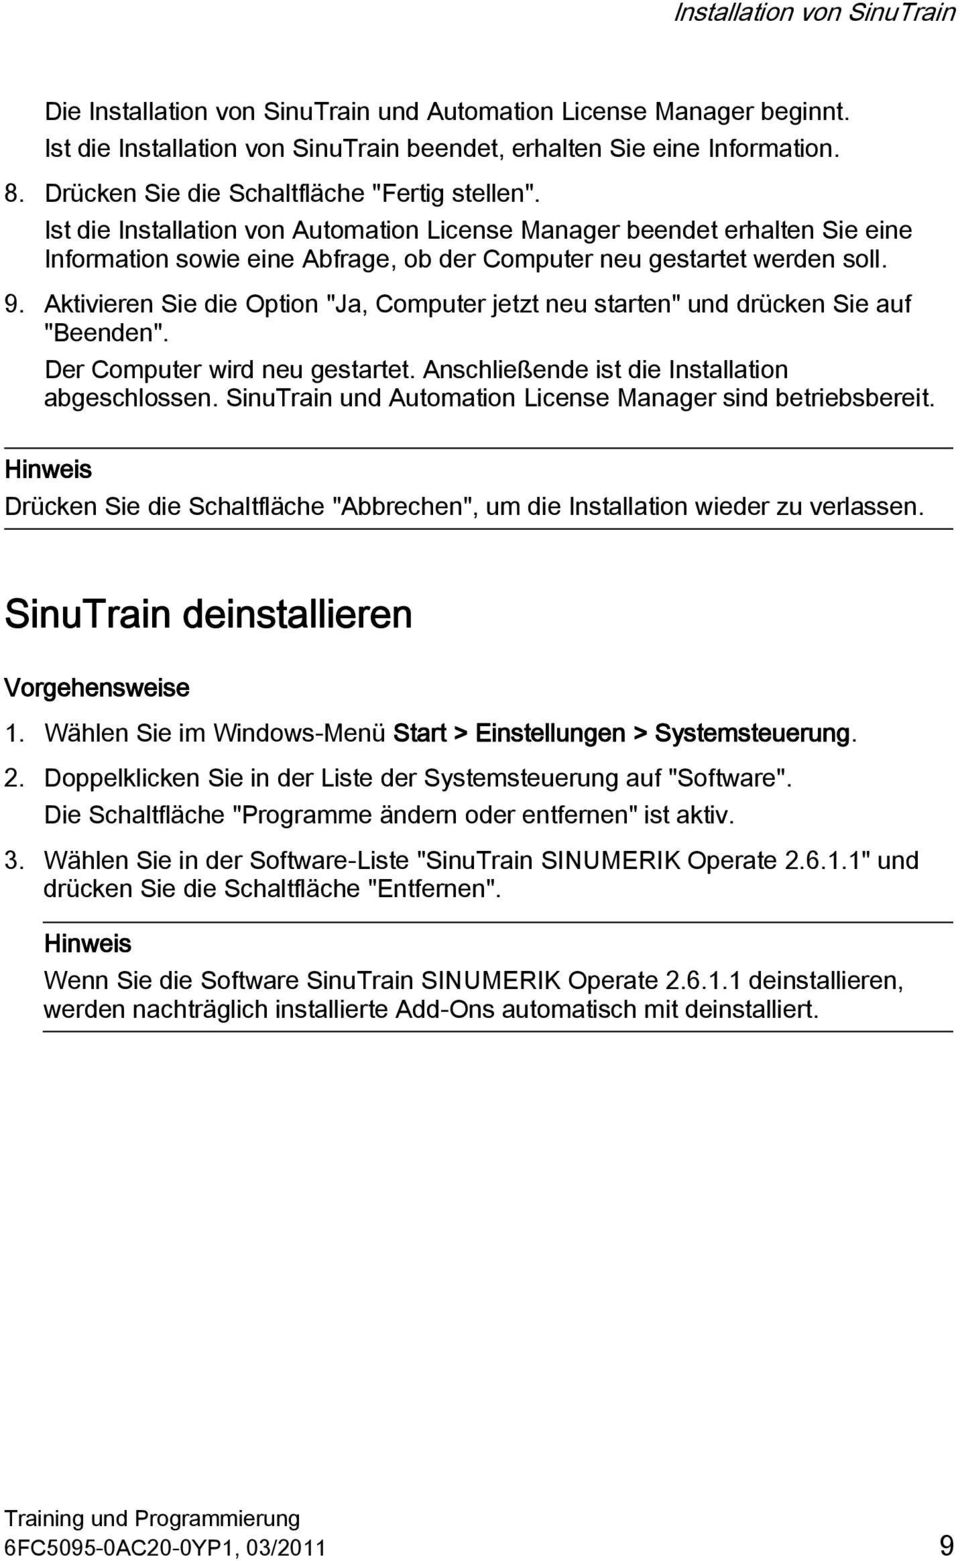 SINUMERIK SinuTrain SINUMERIK Operate Training und